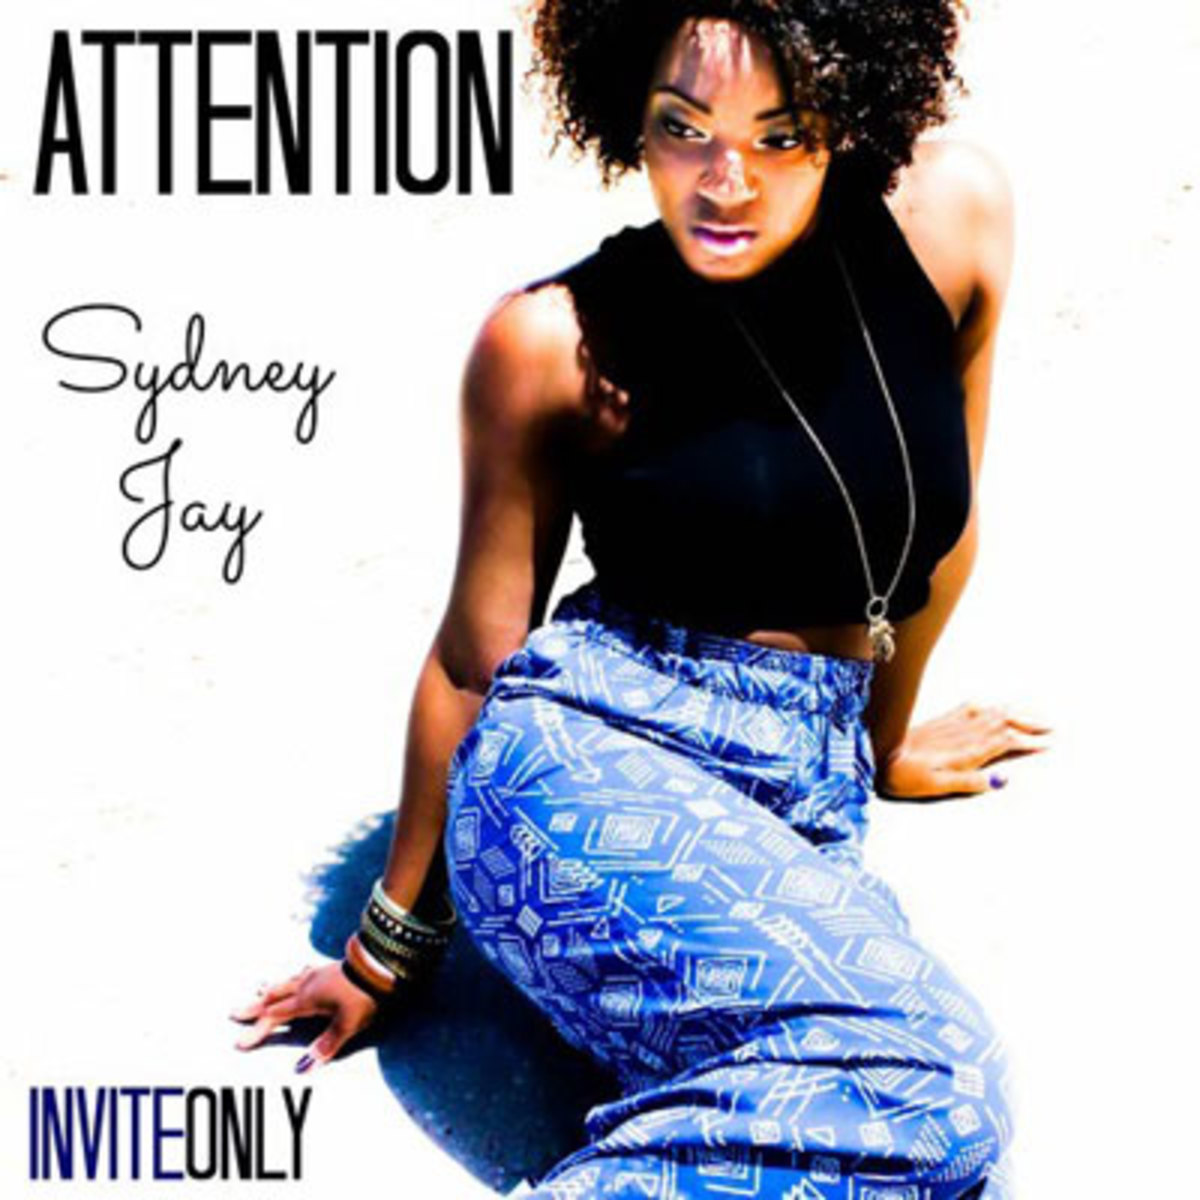 sydneyjay-attention.jpg